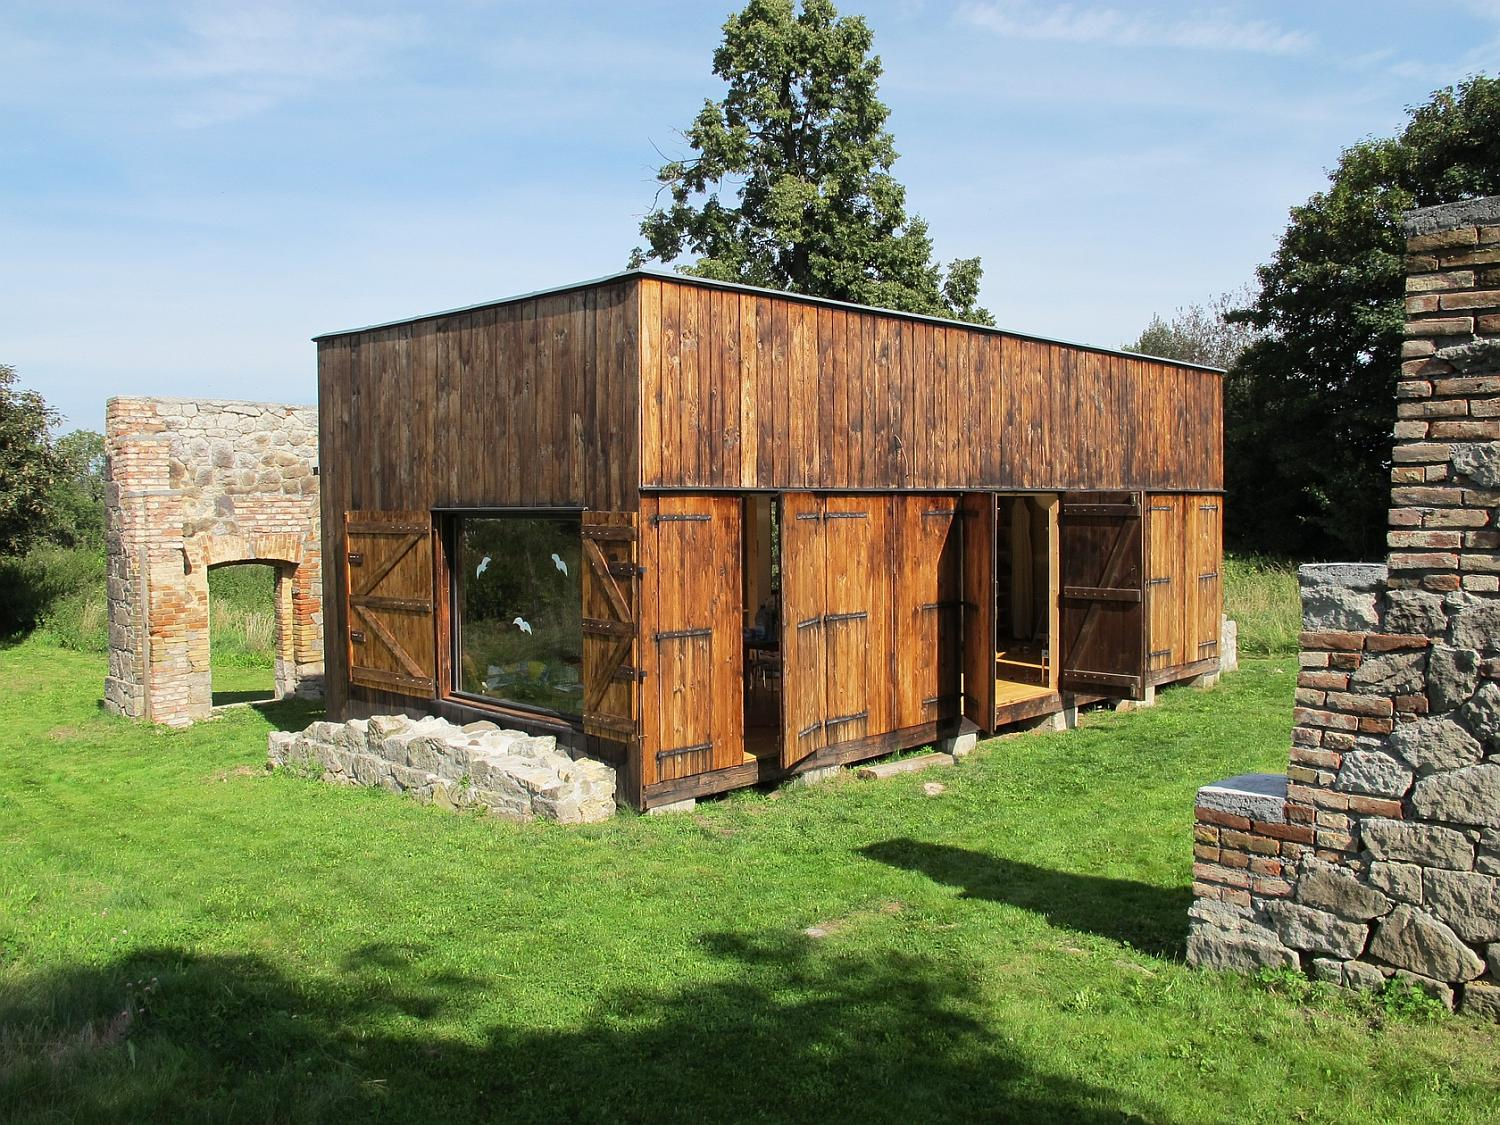 Gallery a simple rustic retreat in the czech countryside for Rustic retreat